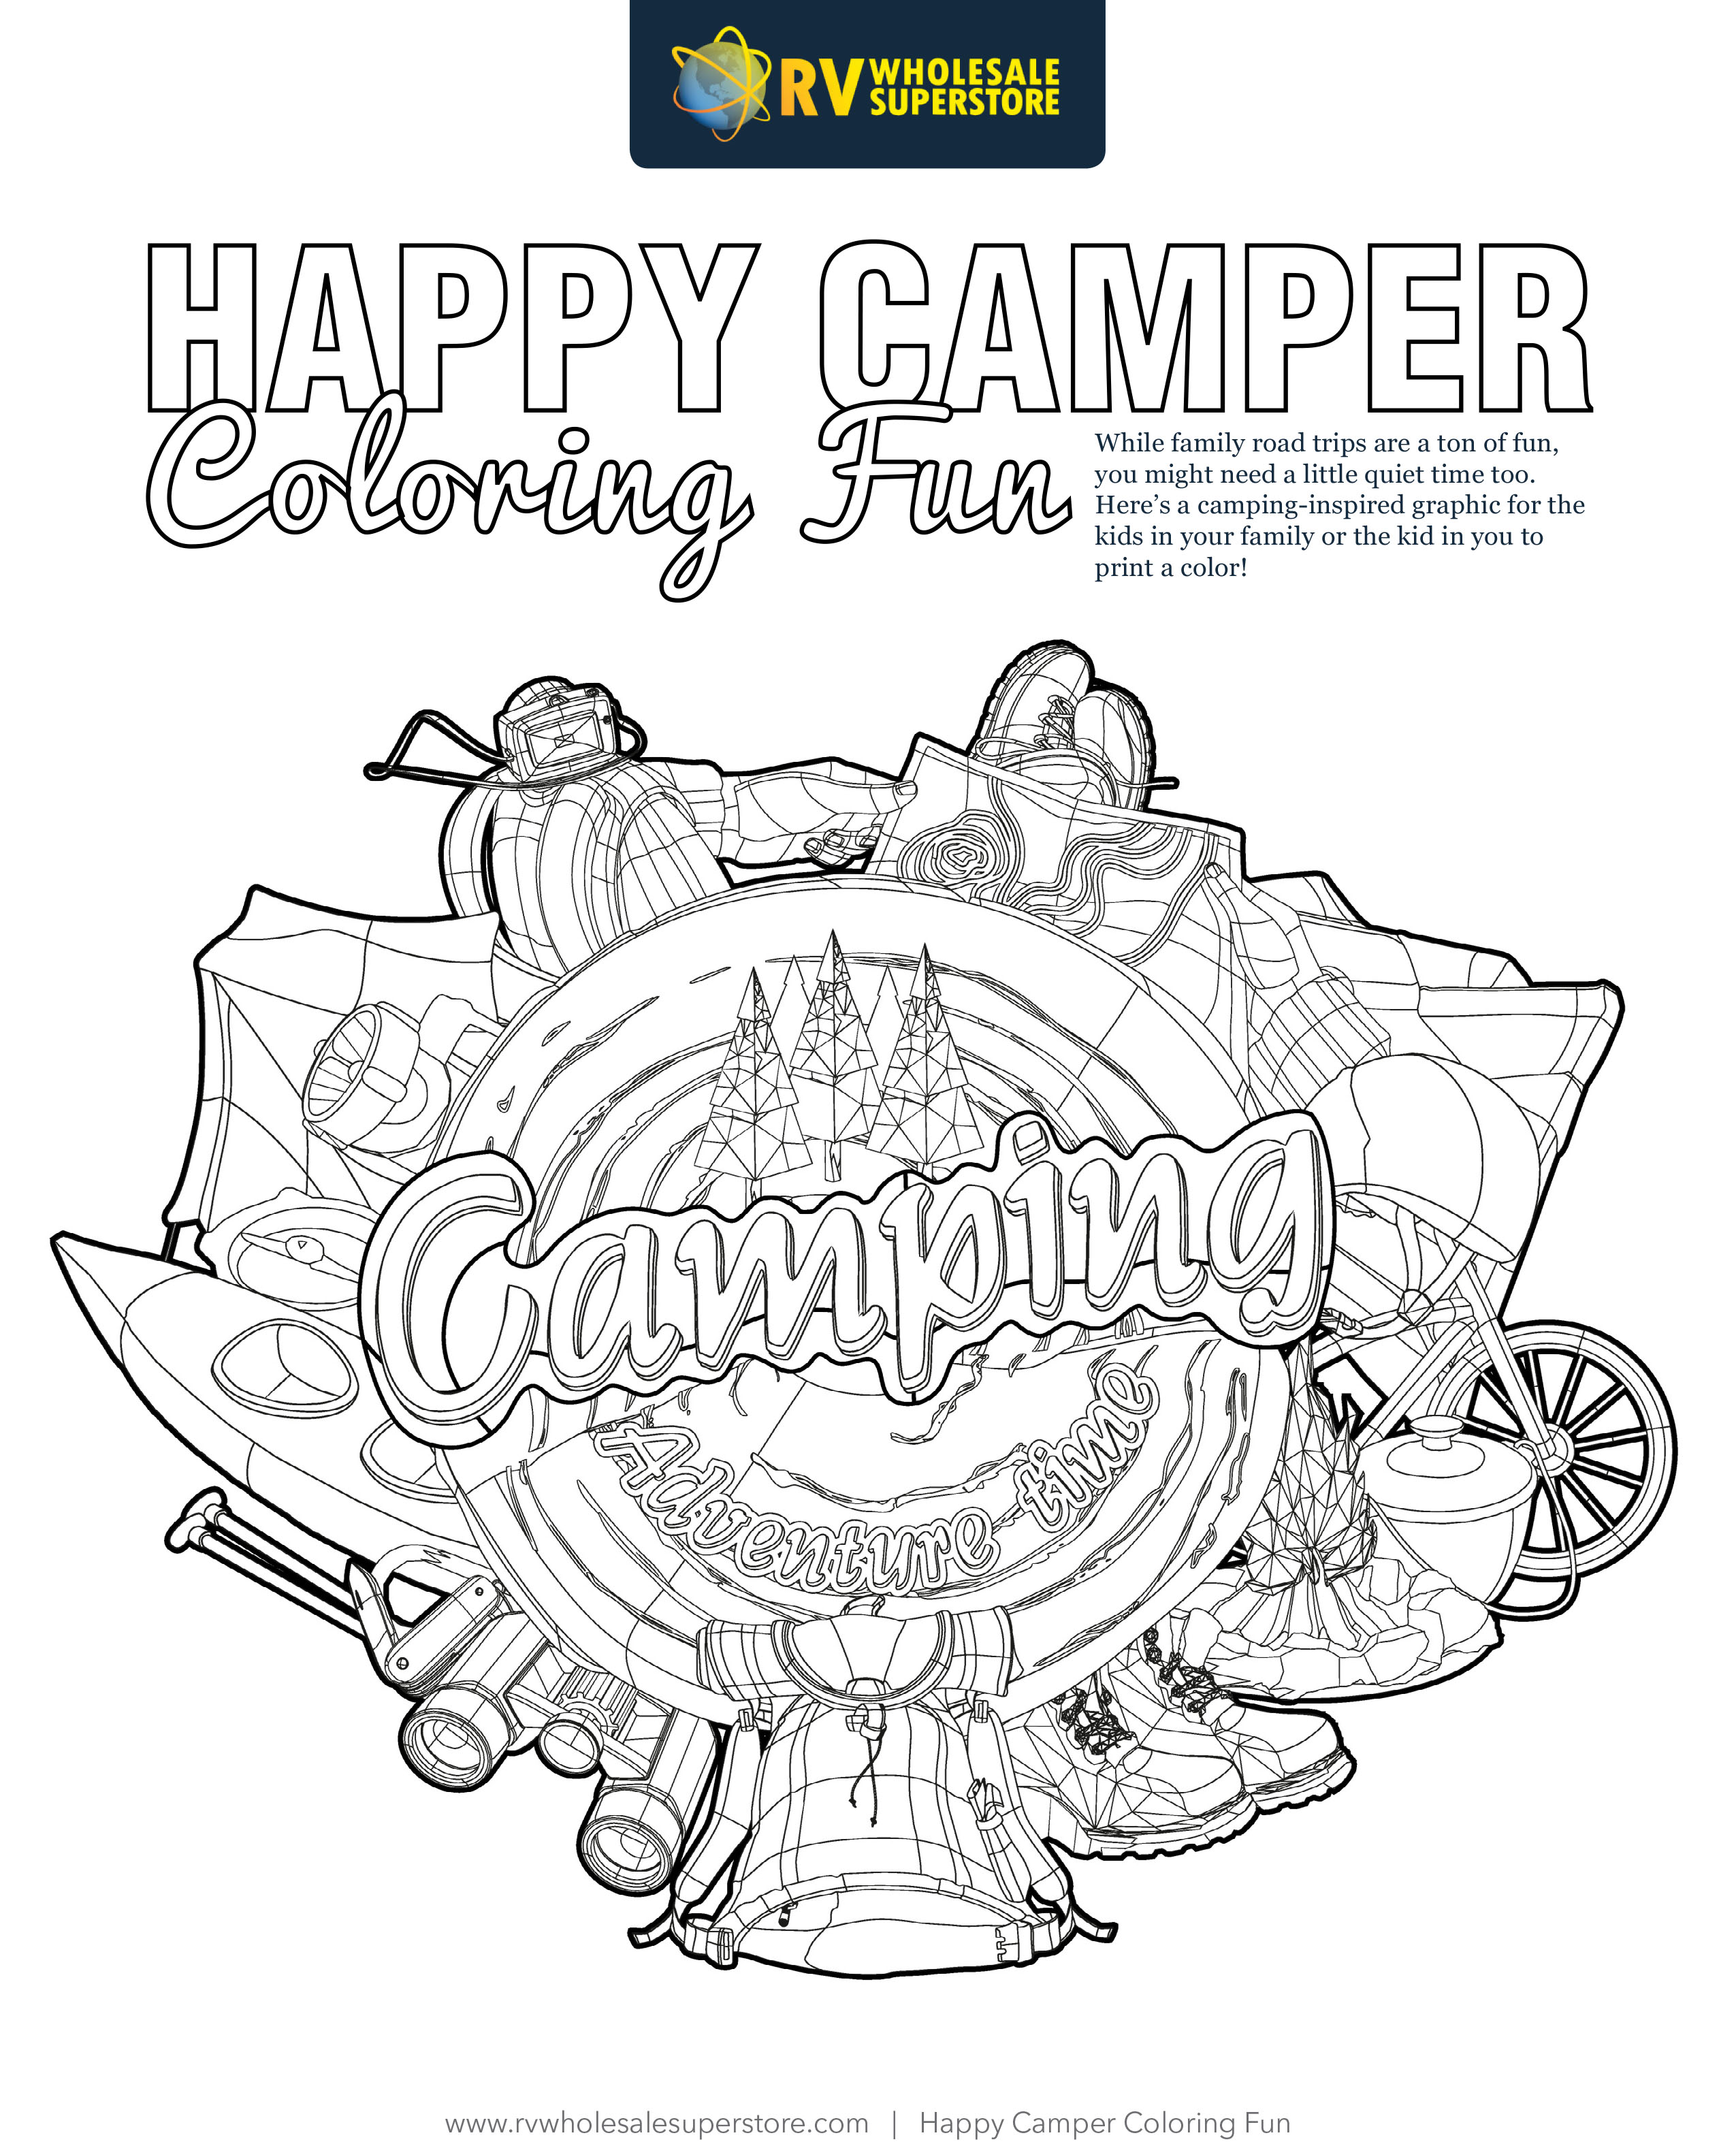 Happy Camper Coloring Sheet ∣ RV Wholesale Superstore